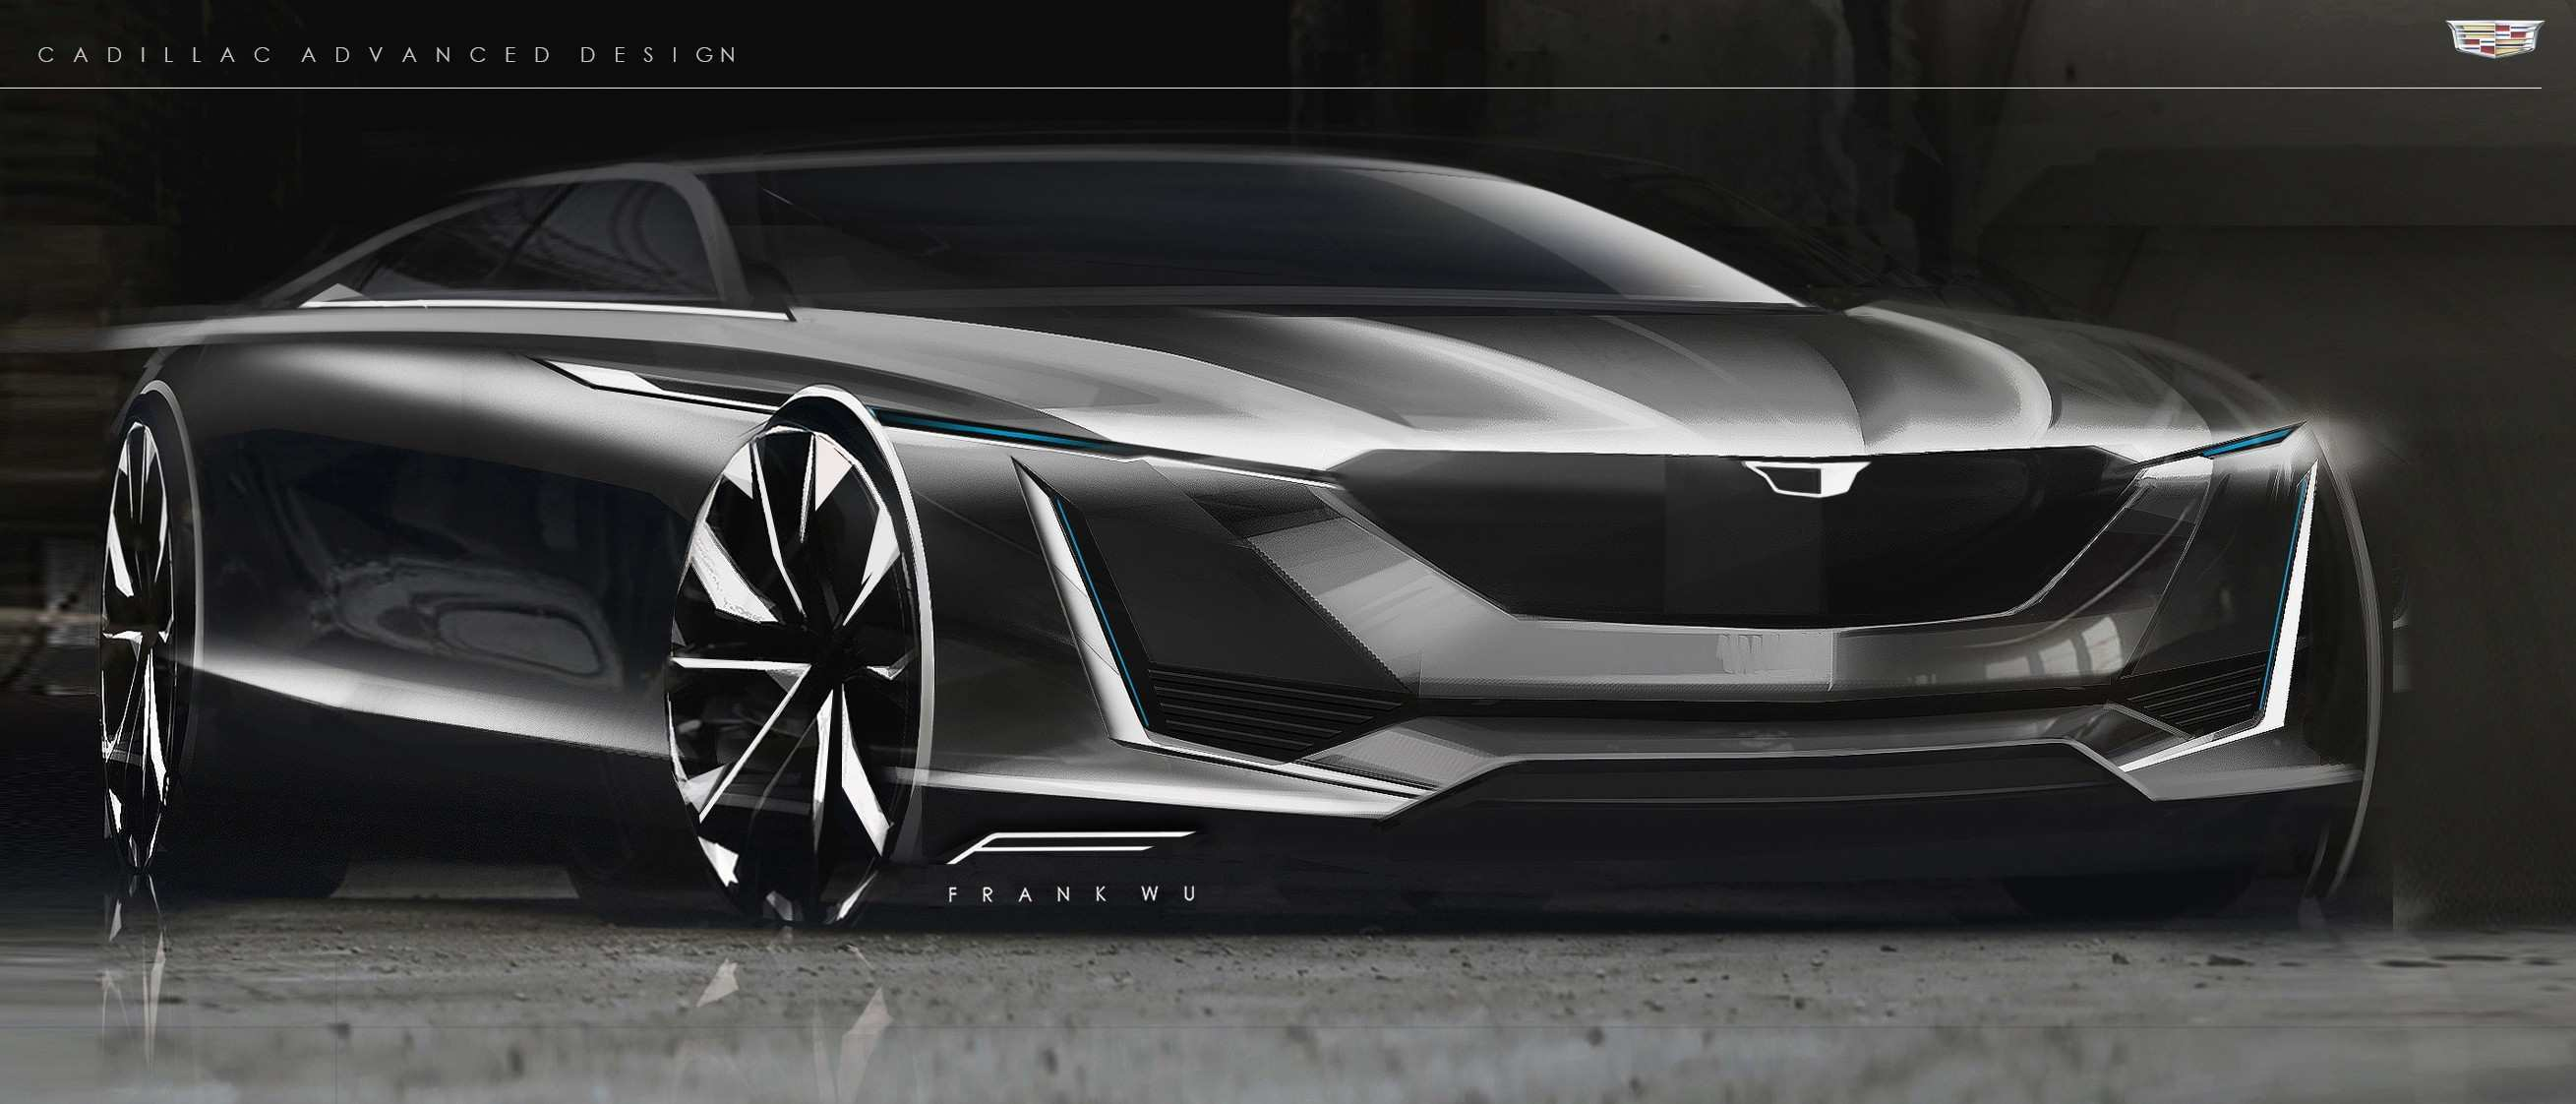 63 Best Review Cadillac Supercar 2020 History for Cadillac Supercar 2020